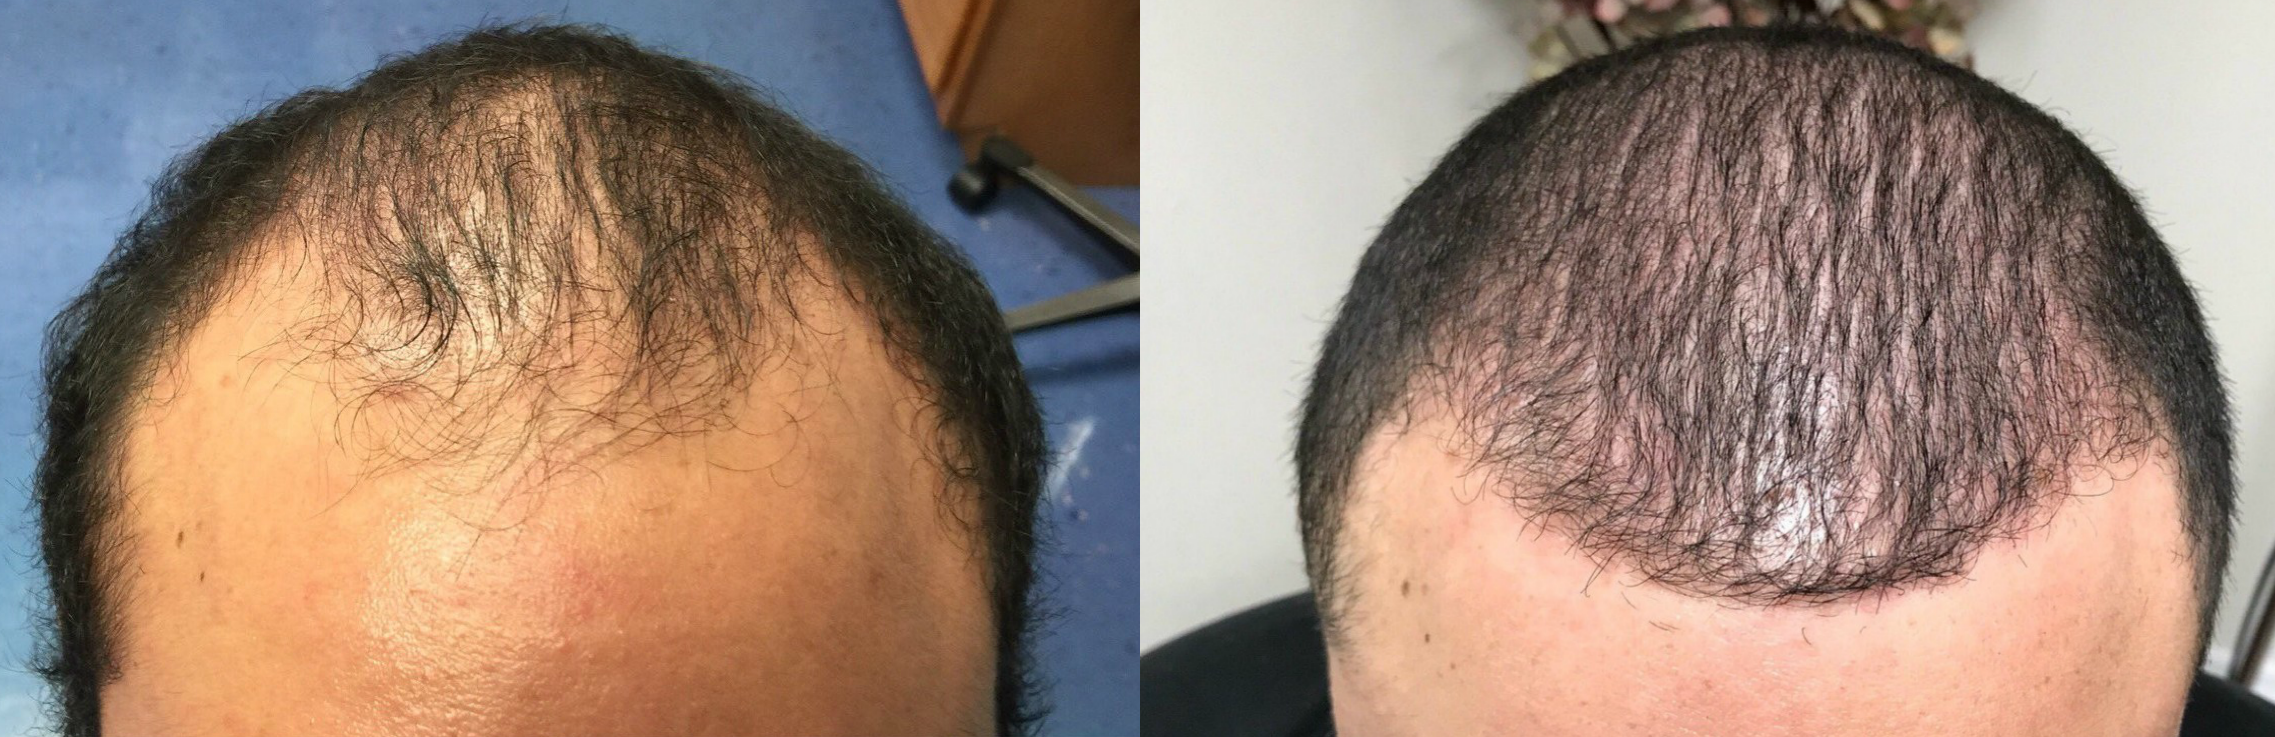 ARTAS Hair Transplant Before and After Results in Tampa, FL